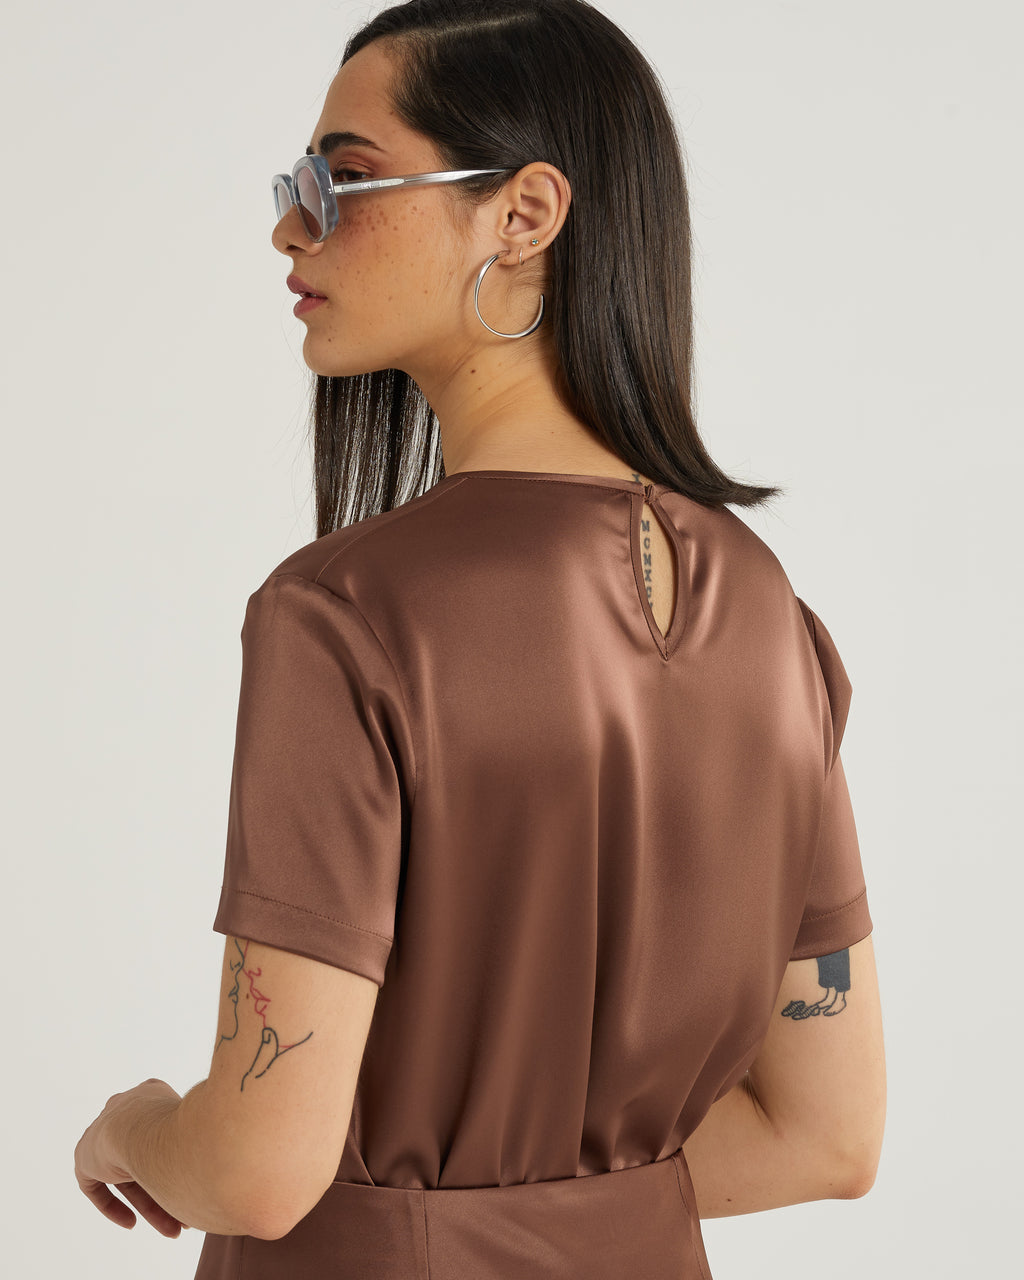 Trudy short sleeve satin top